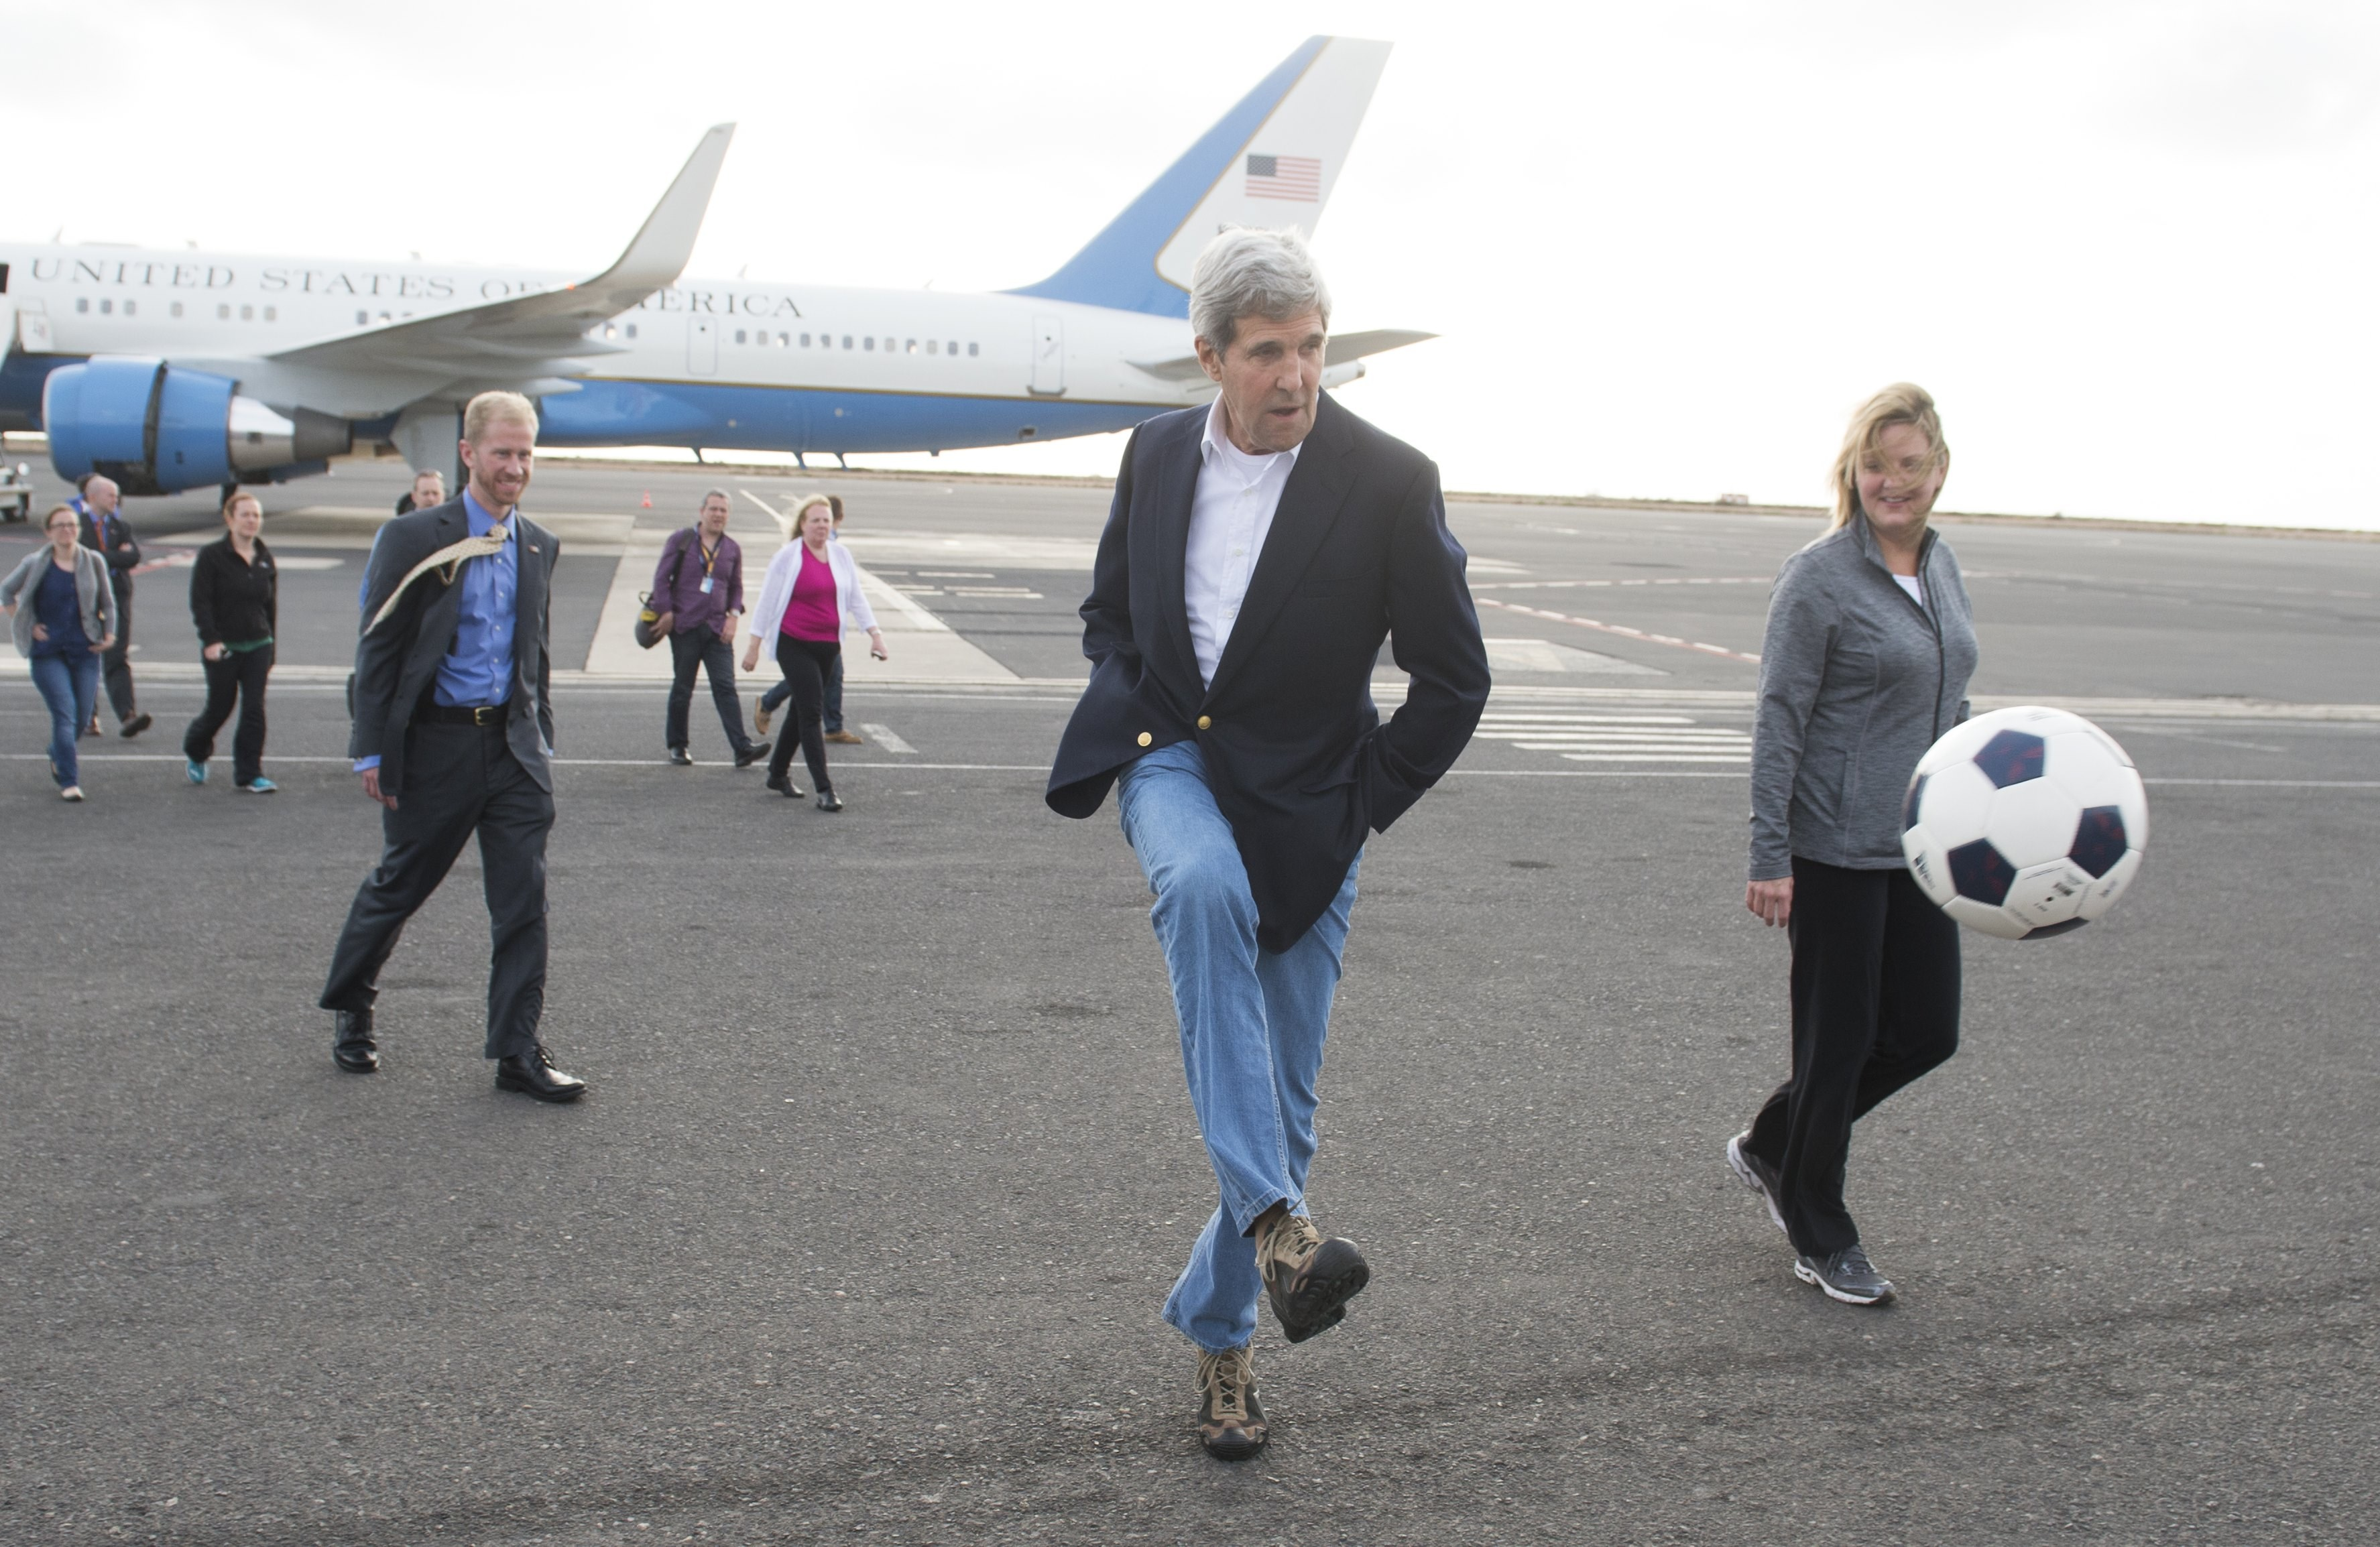 US Secretary of State John Kerry kicks around a soccer ball during an airplane refueling stop at Sal Island, Cape Verde, on May 5, 2014.